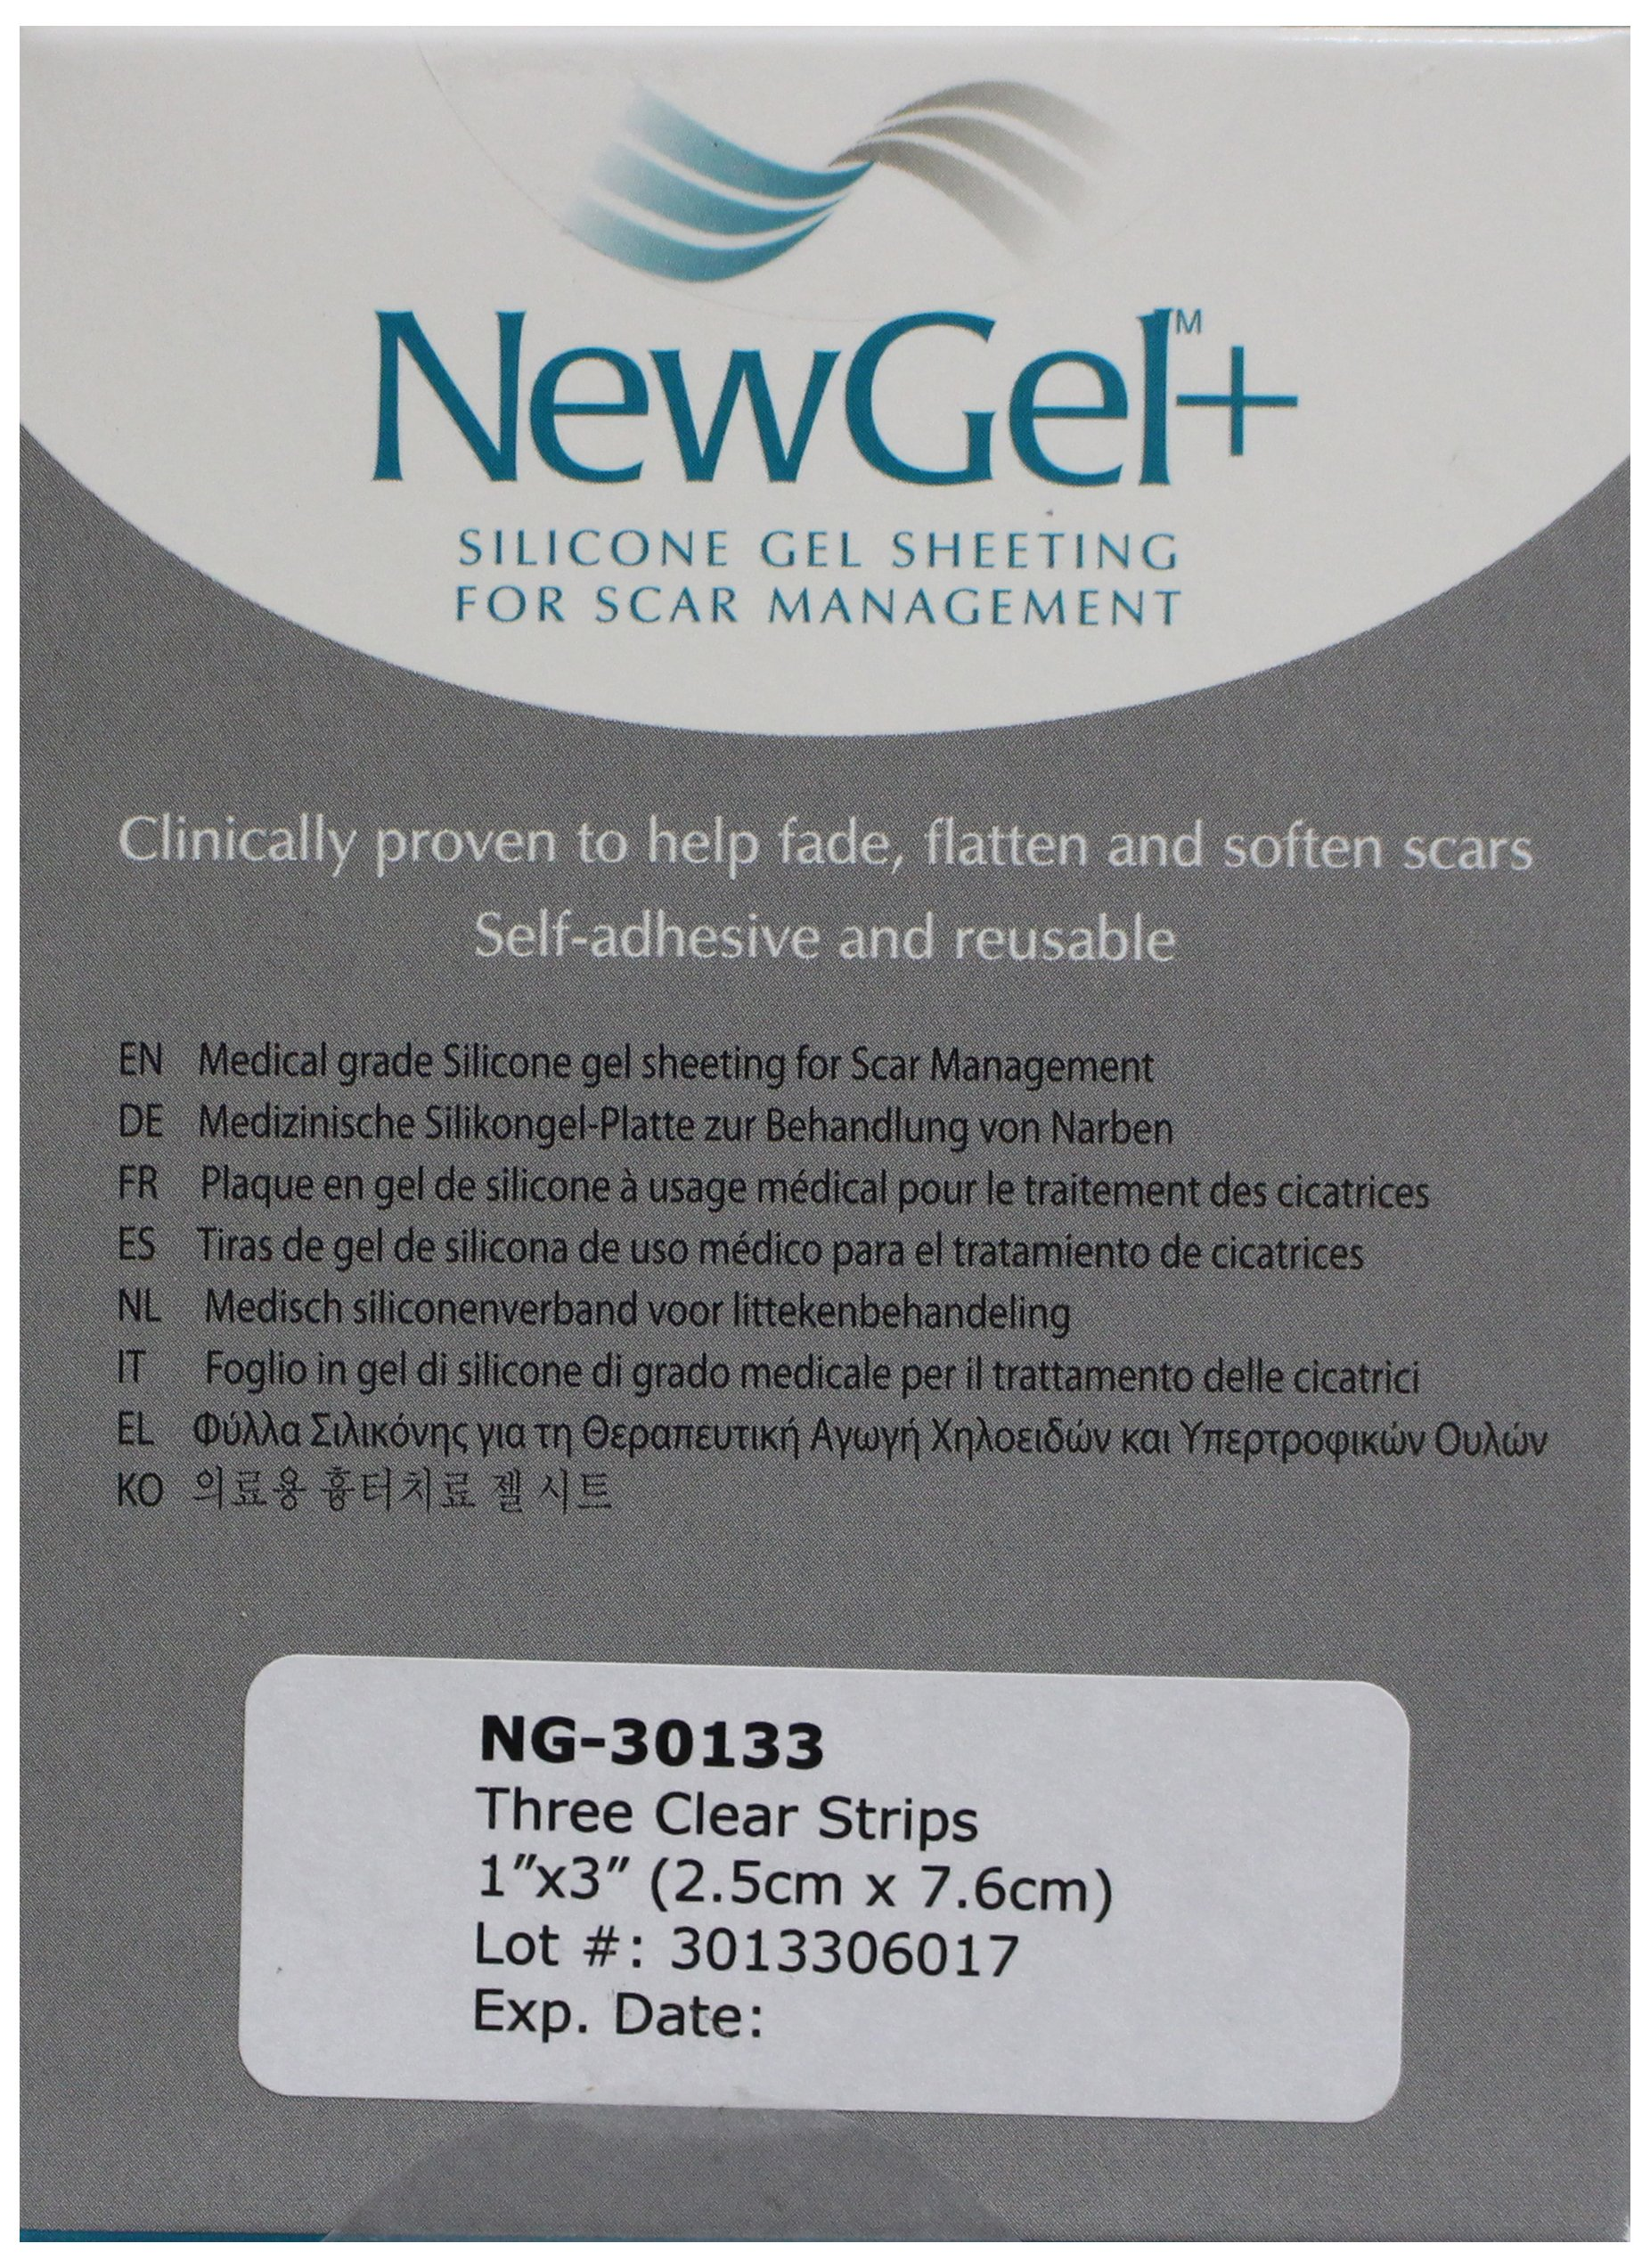 NewGel+ Silicone Gel Sheet for Scars, 1 x 3 Inch, Clear, 3 Count by NewGel+